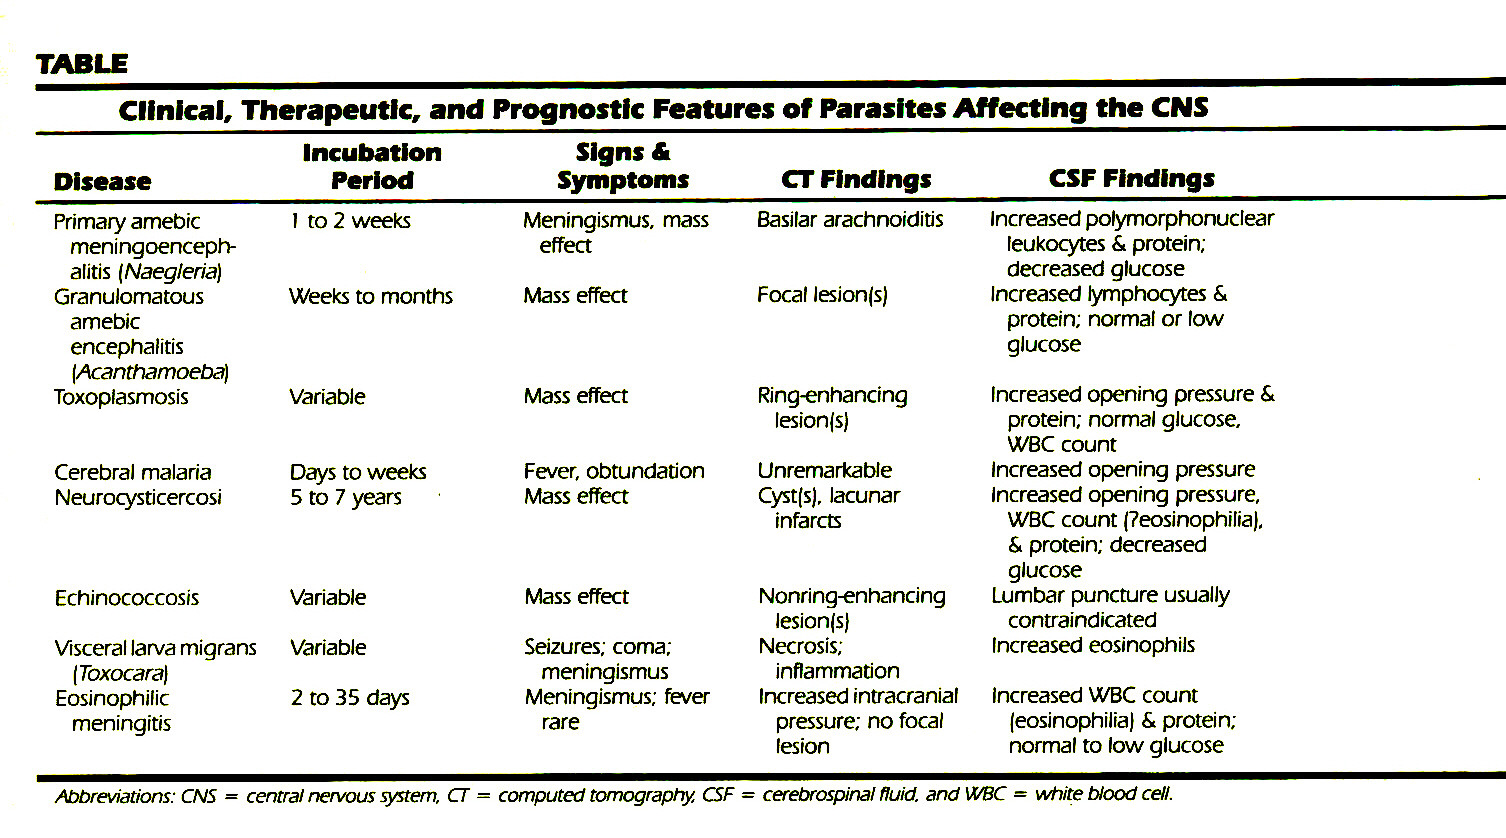 TABLEClinical, Therapeutic, and Prognostic Features of Parasites Affecting the CNS